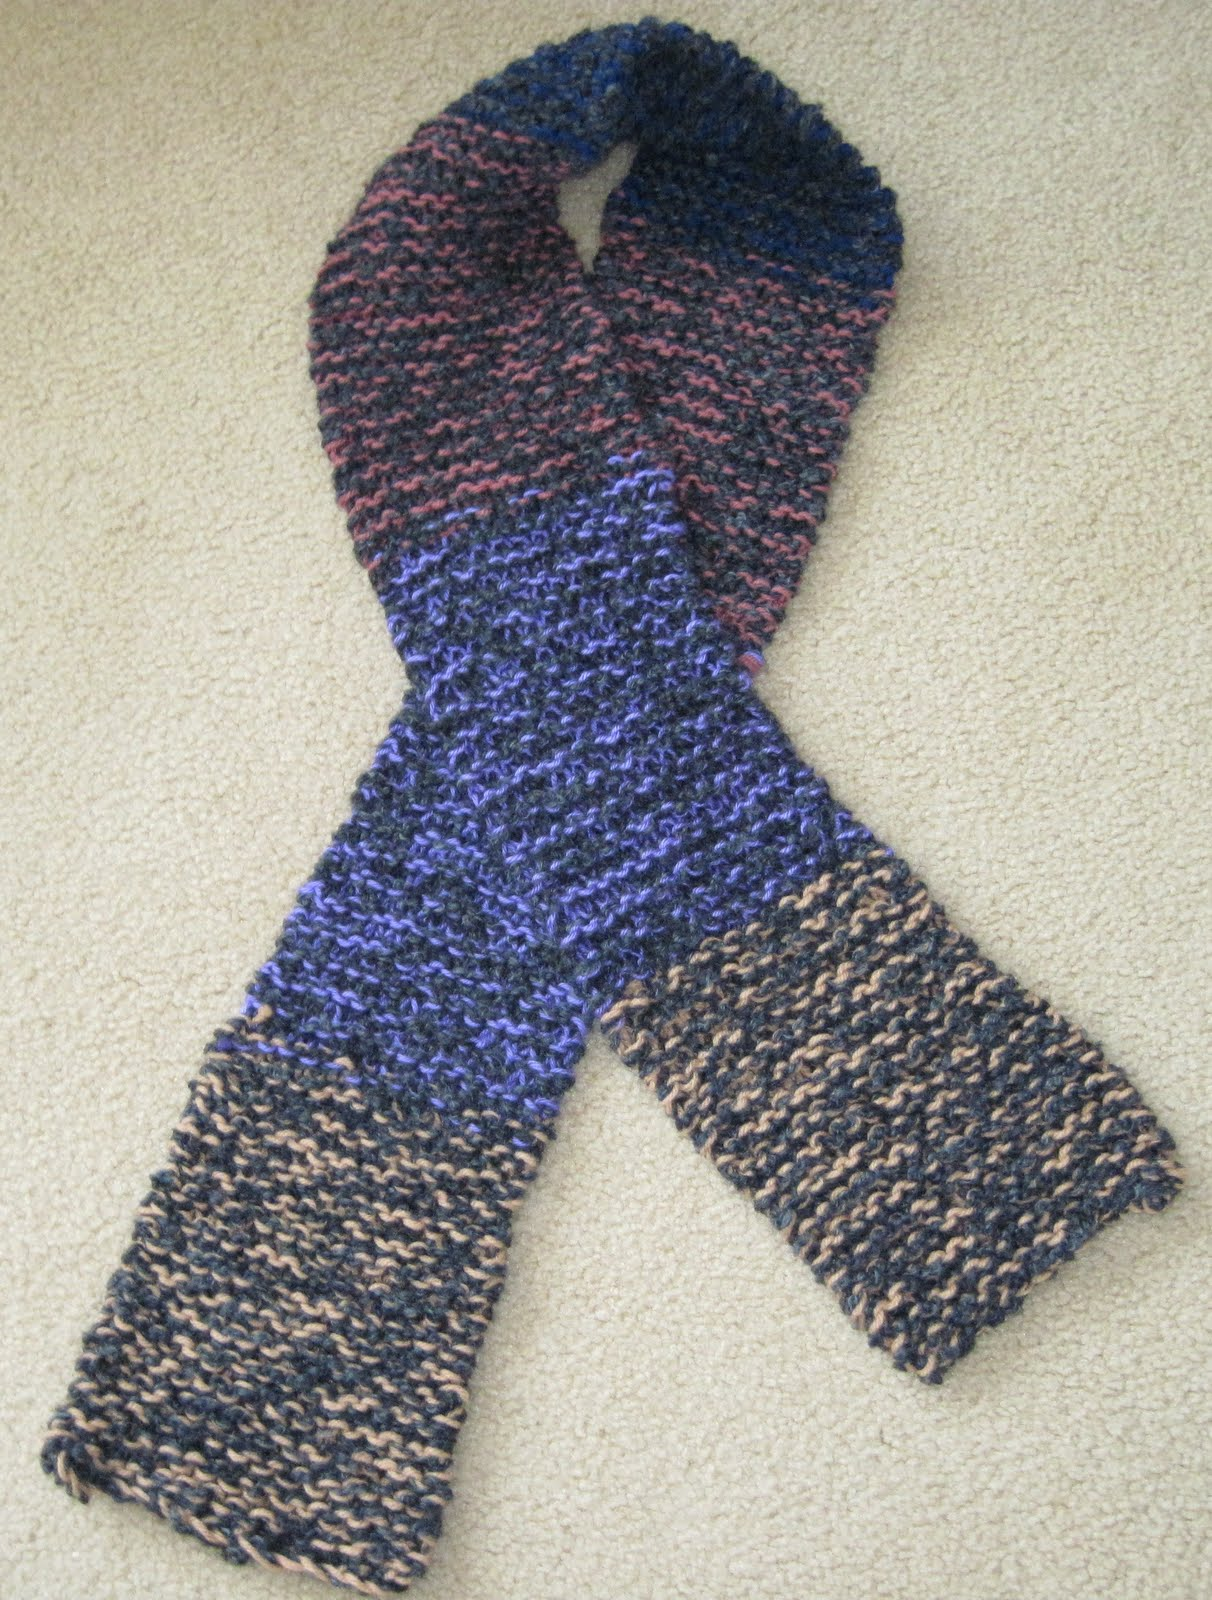 Knitting Scarves For The Homeless : Bridge and beyond doubled it up darling daughter